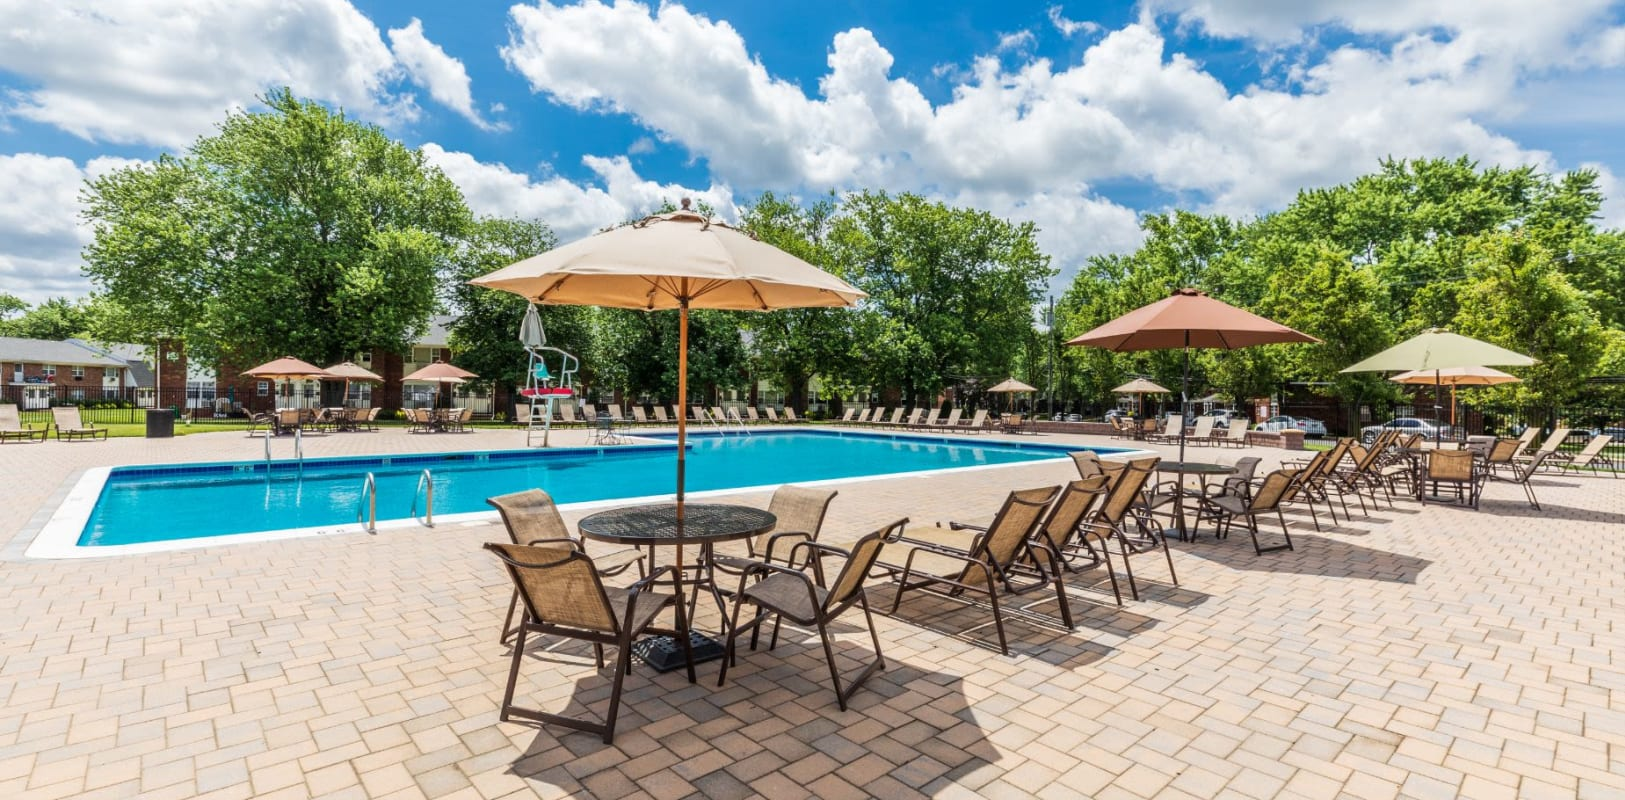 Poolside lounge at Nieuw Amsterdam Village in South Amboy, New Jersey